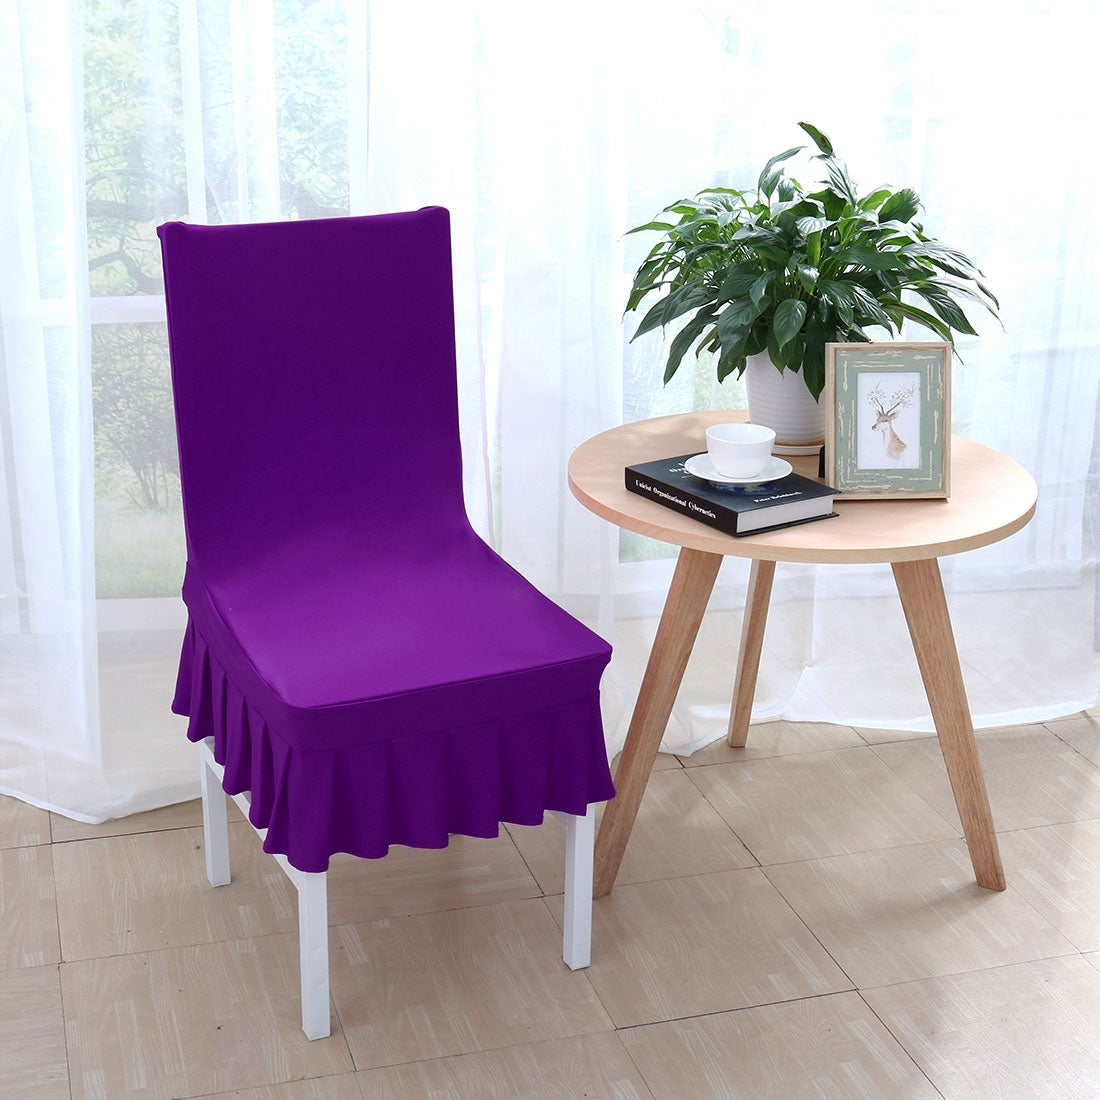 Purple Slipcovers Furniture Covers For Less